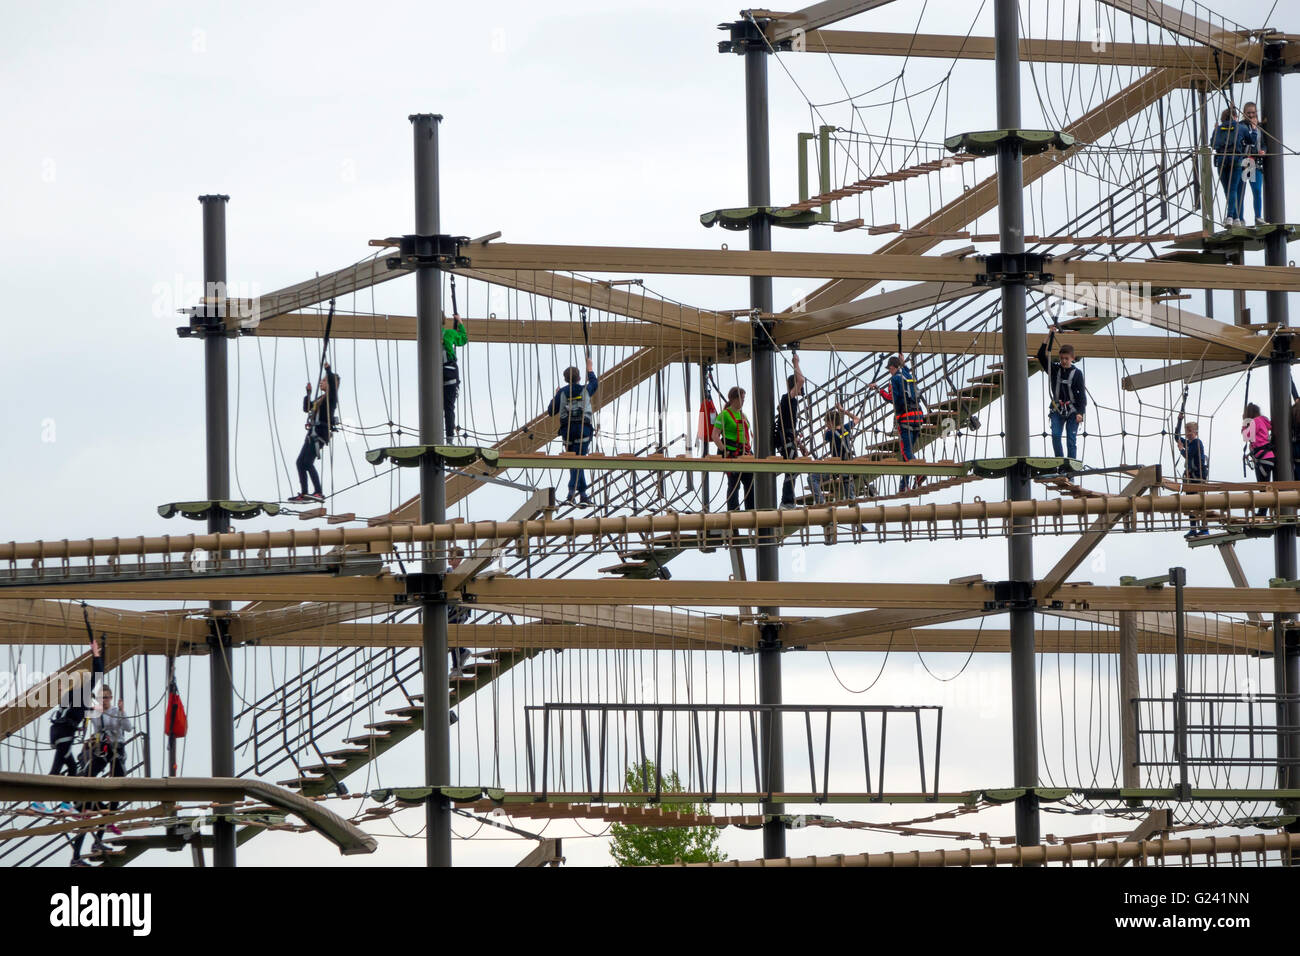 People Enjoying The Challenge Of Climbing On The Air Trail Visitor Stock Photo Royalty Free ...